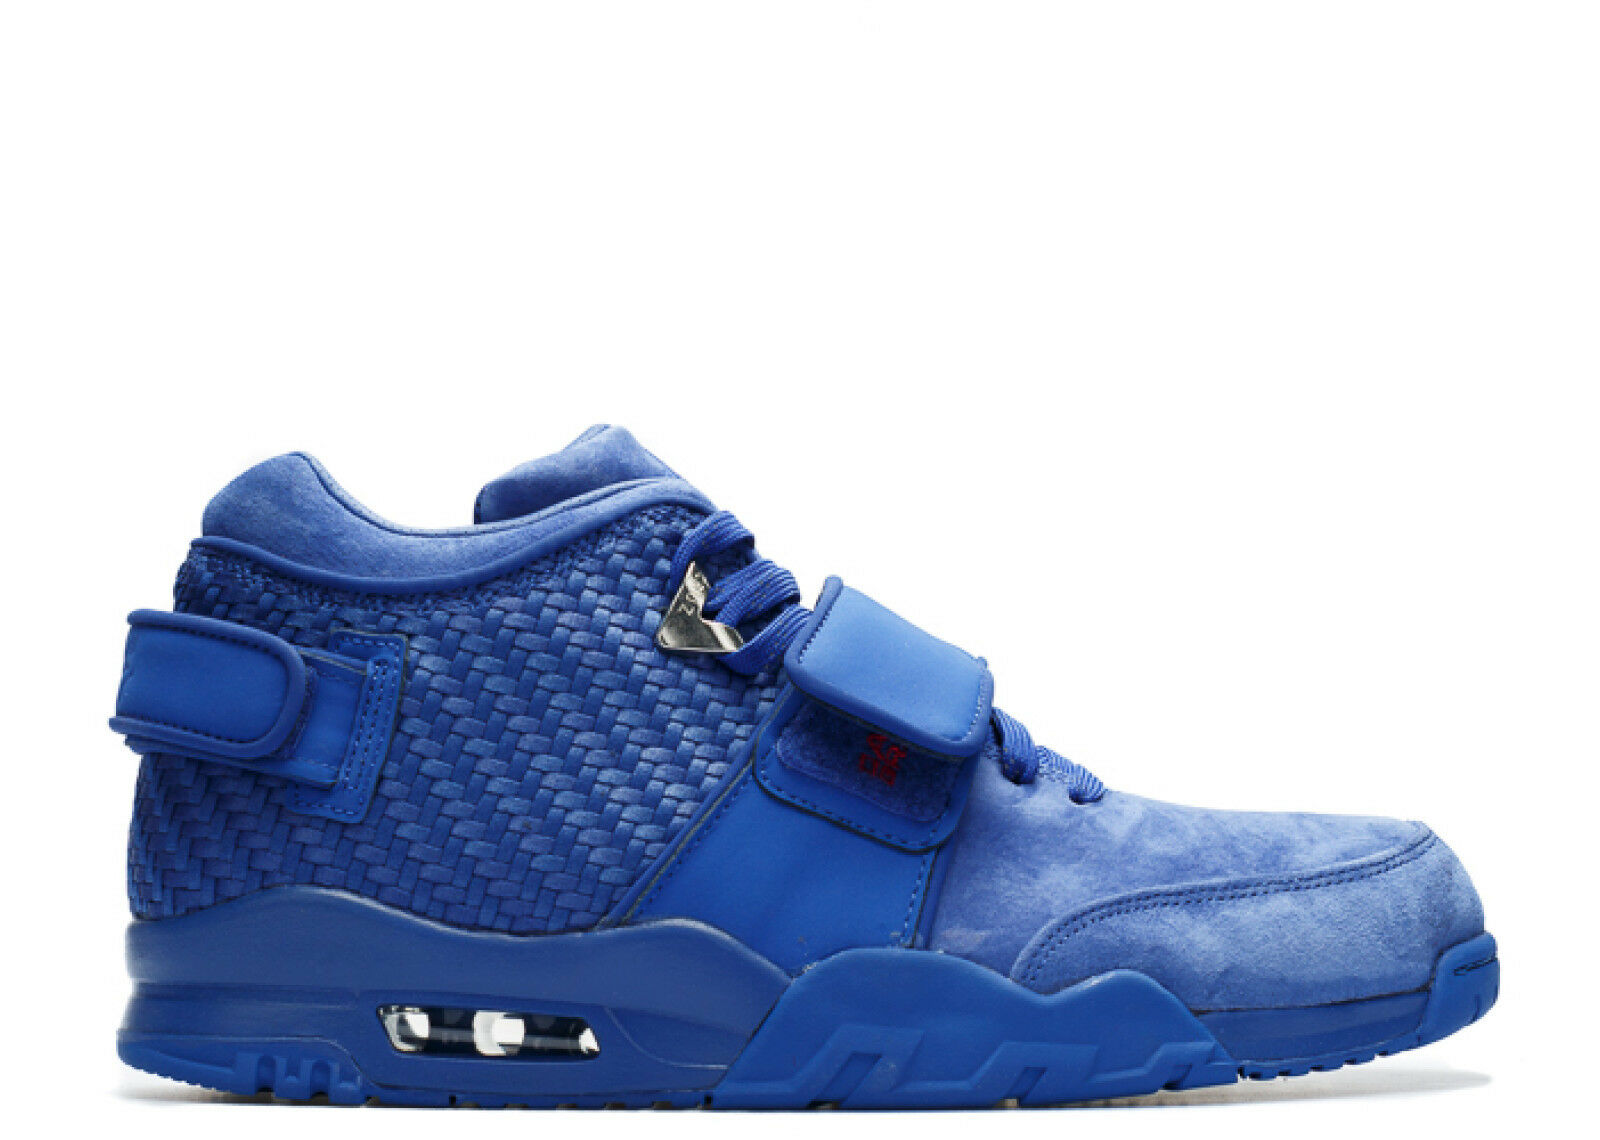 Nike air trainer victor cruz premium rush 812637-400 ny ny ny giants Blau suede 10,5 66461a